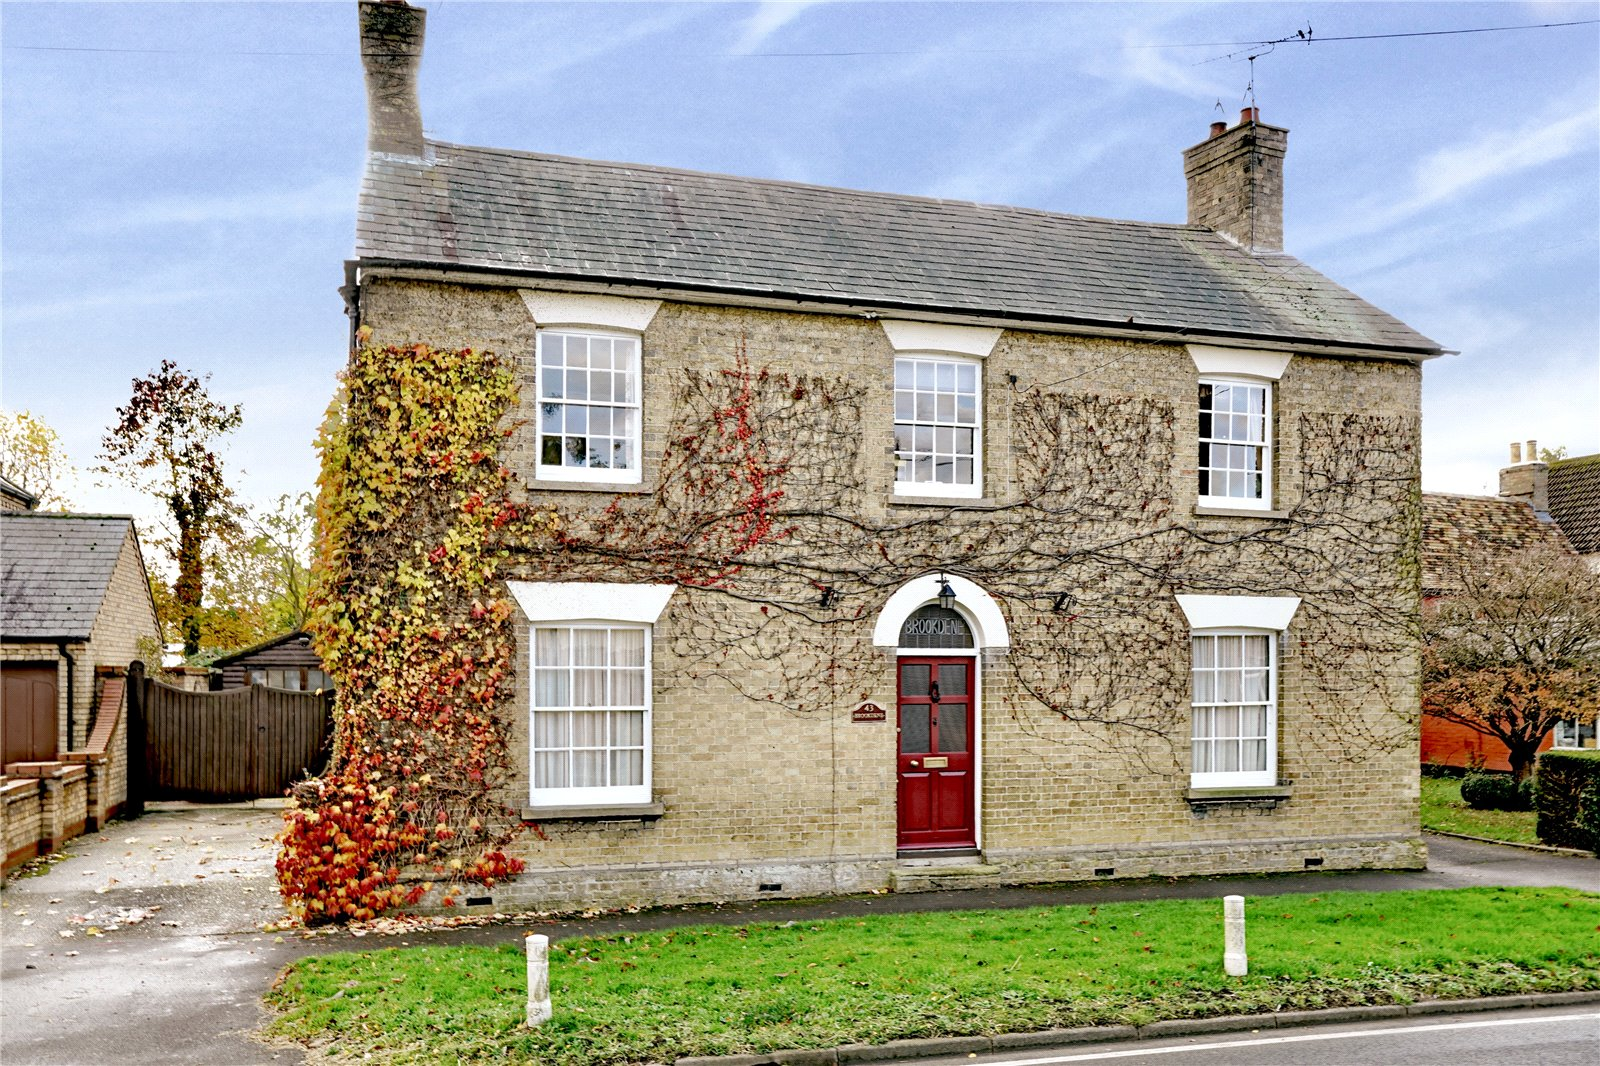 4 bed house for sale in Great Staughton - Property Image 1